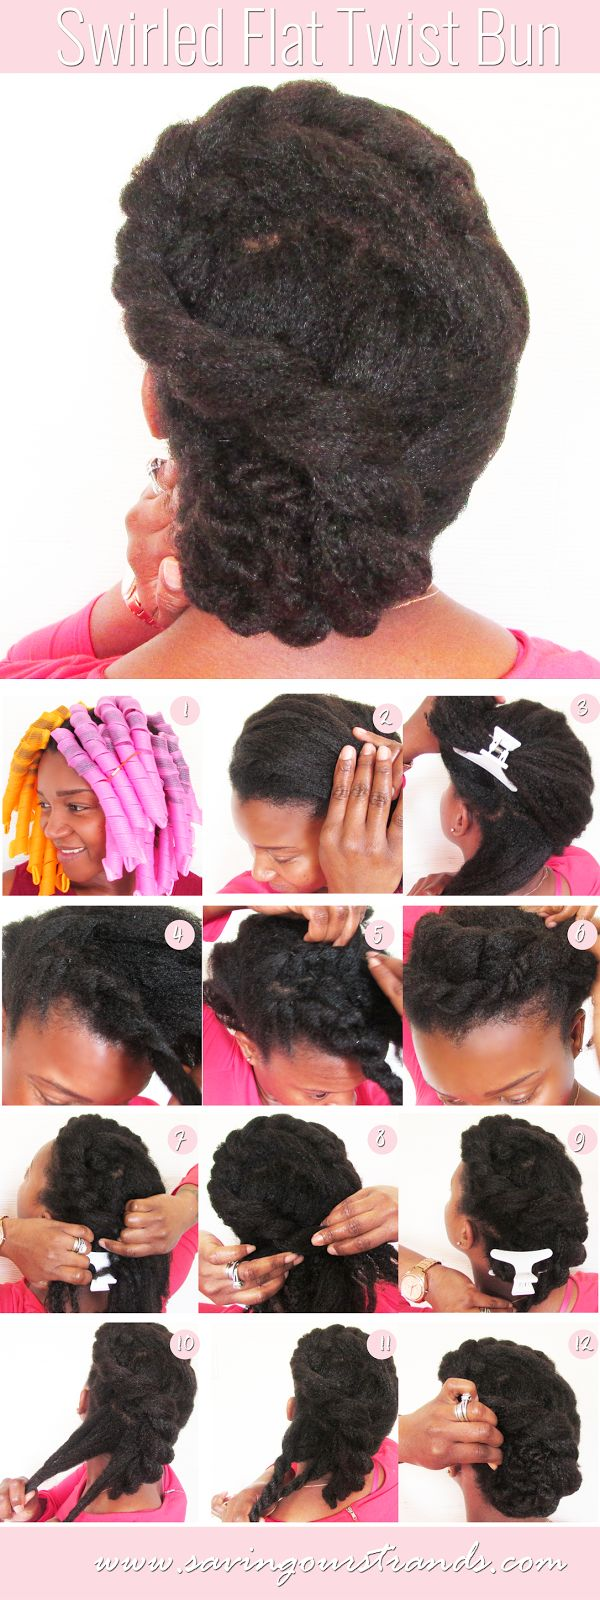 SavingOurStrands | Celebrating Our Natural Kinks Curls & Coils: [Tutorial] Swirled Flat Twist Bun for Natural Hair | The #WashDayExperience